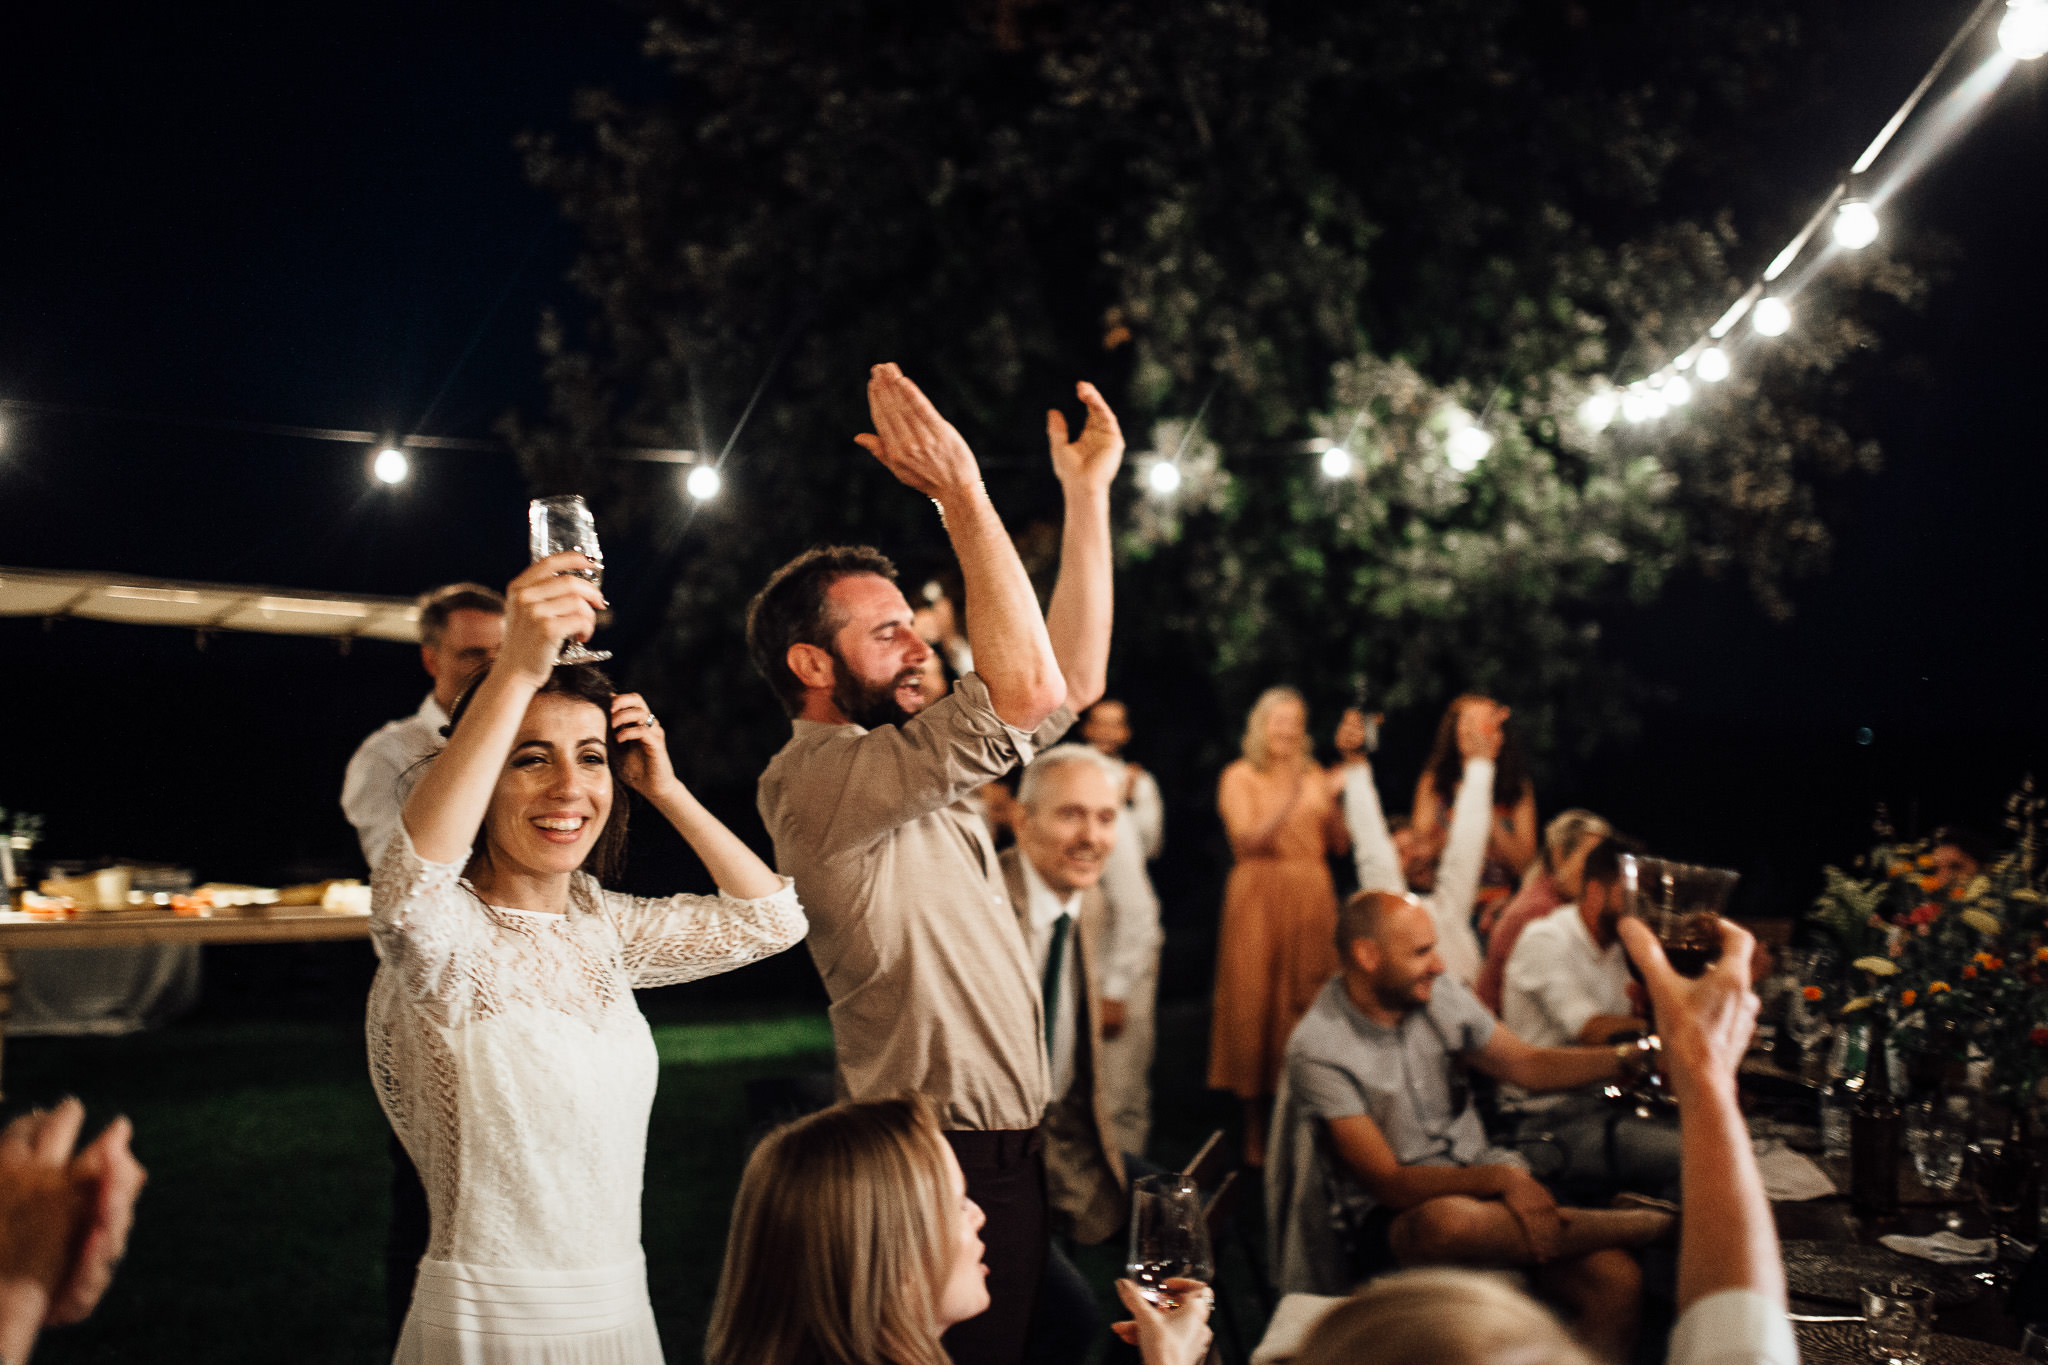 destination outdoor wedding in tuscany italy